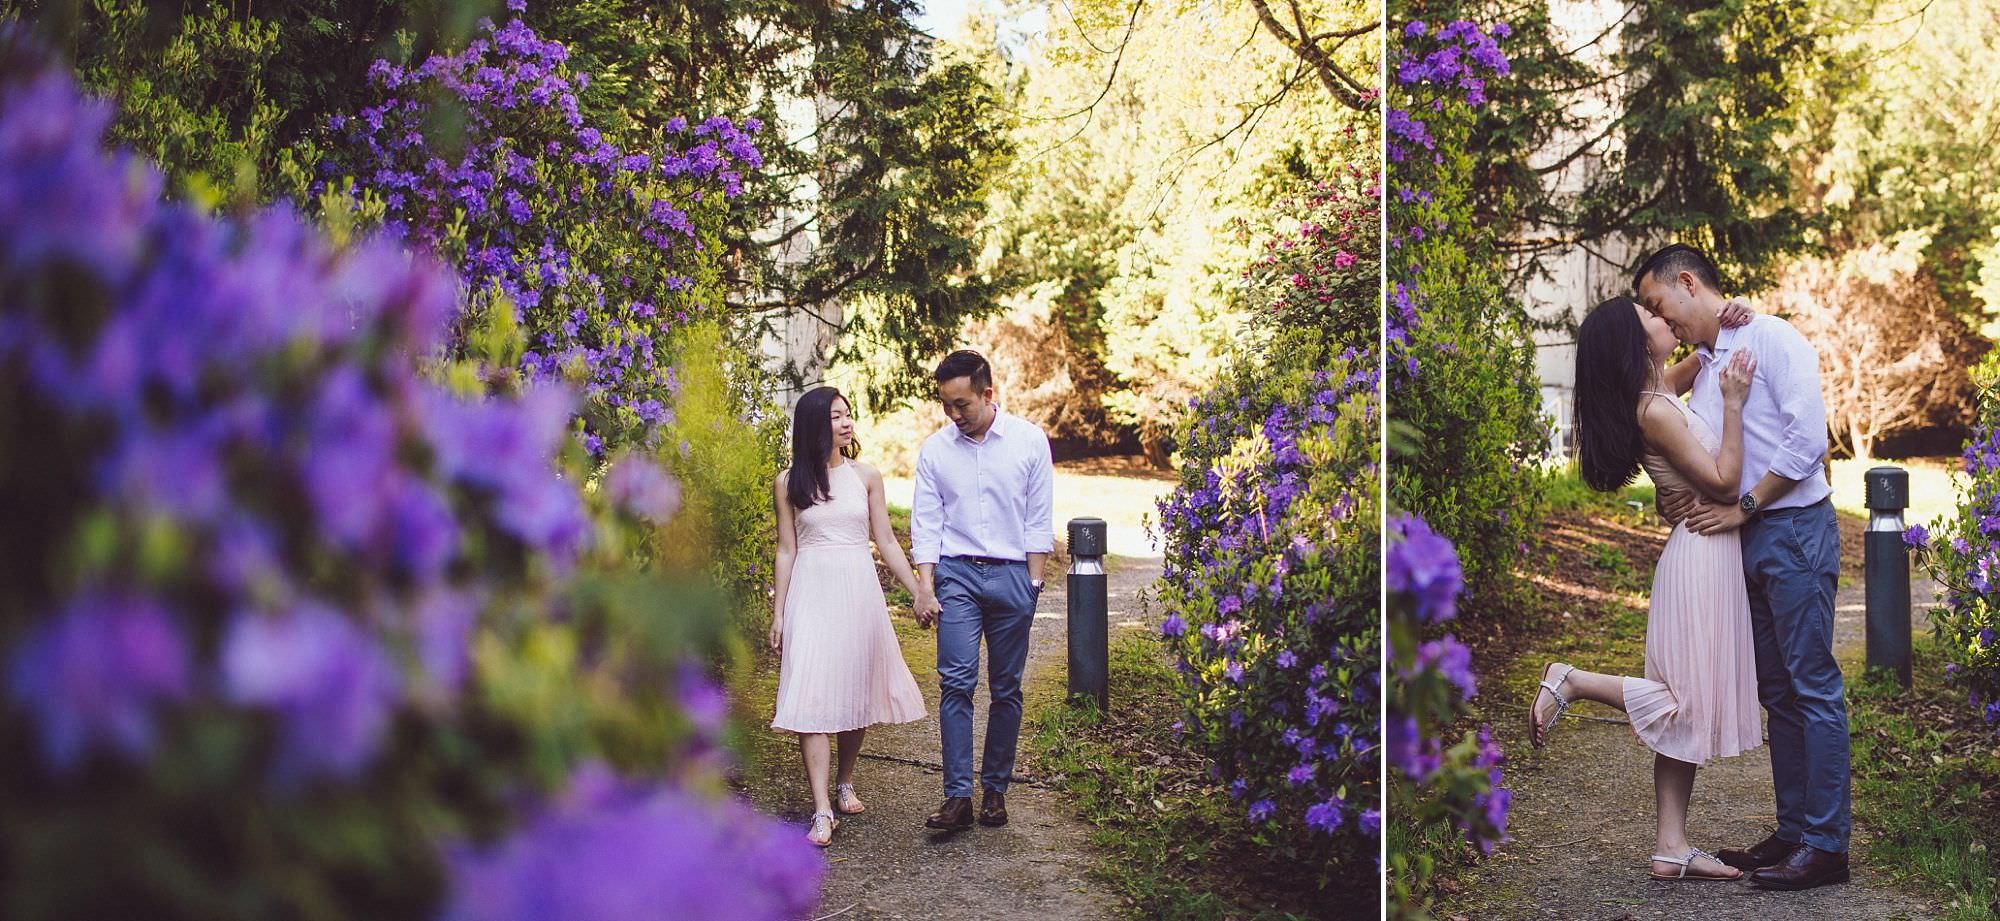 I had scouted out this location before the session, and it turned out just as I imagined….magical.